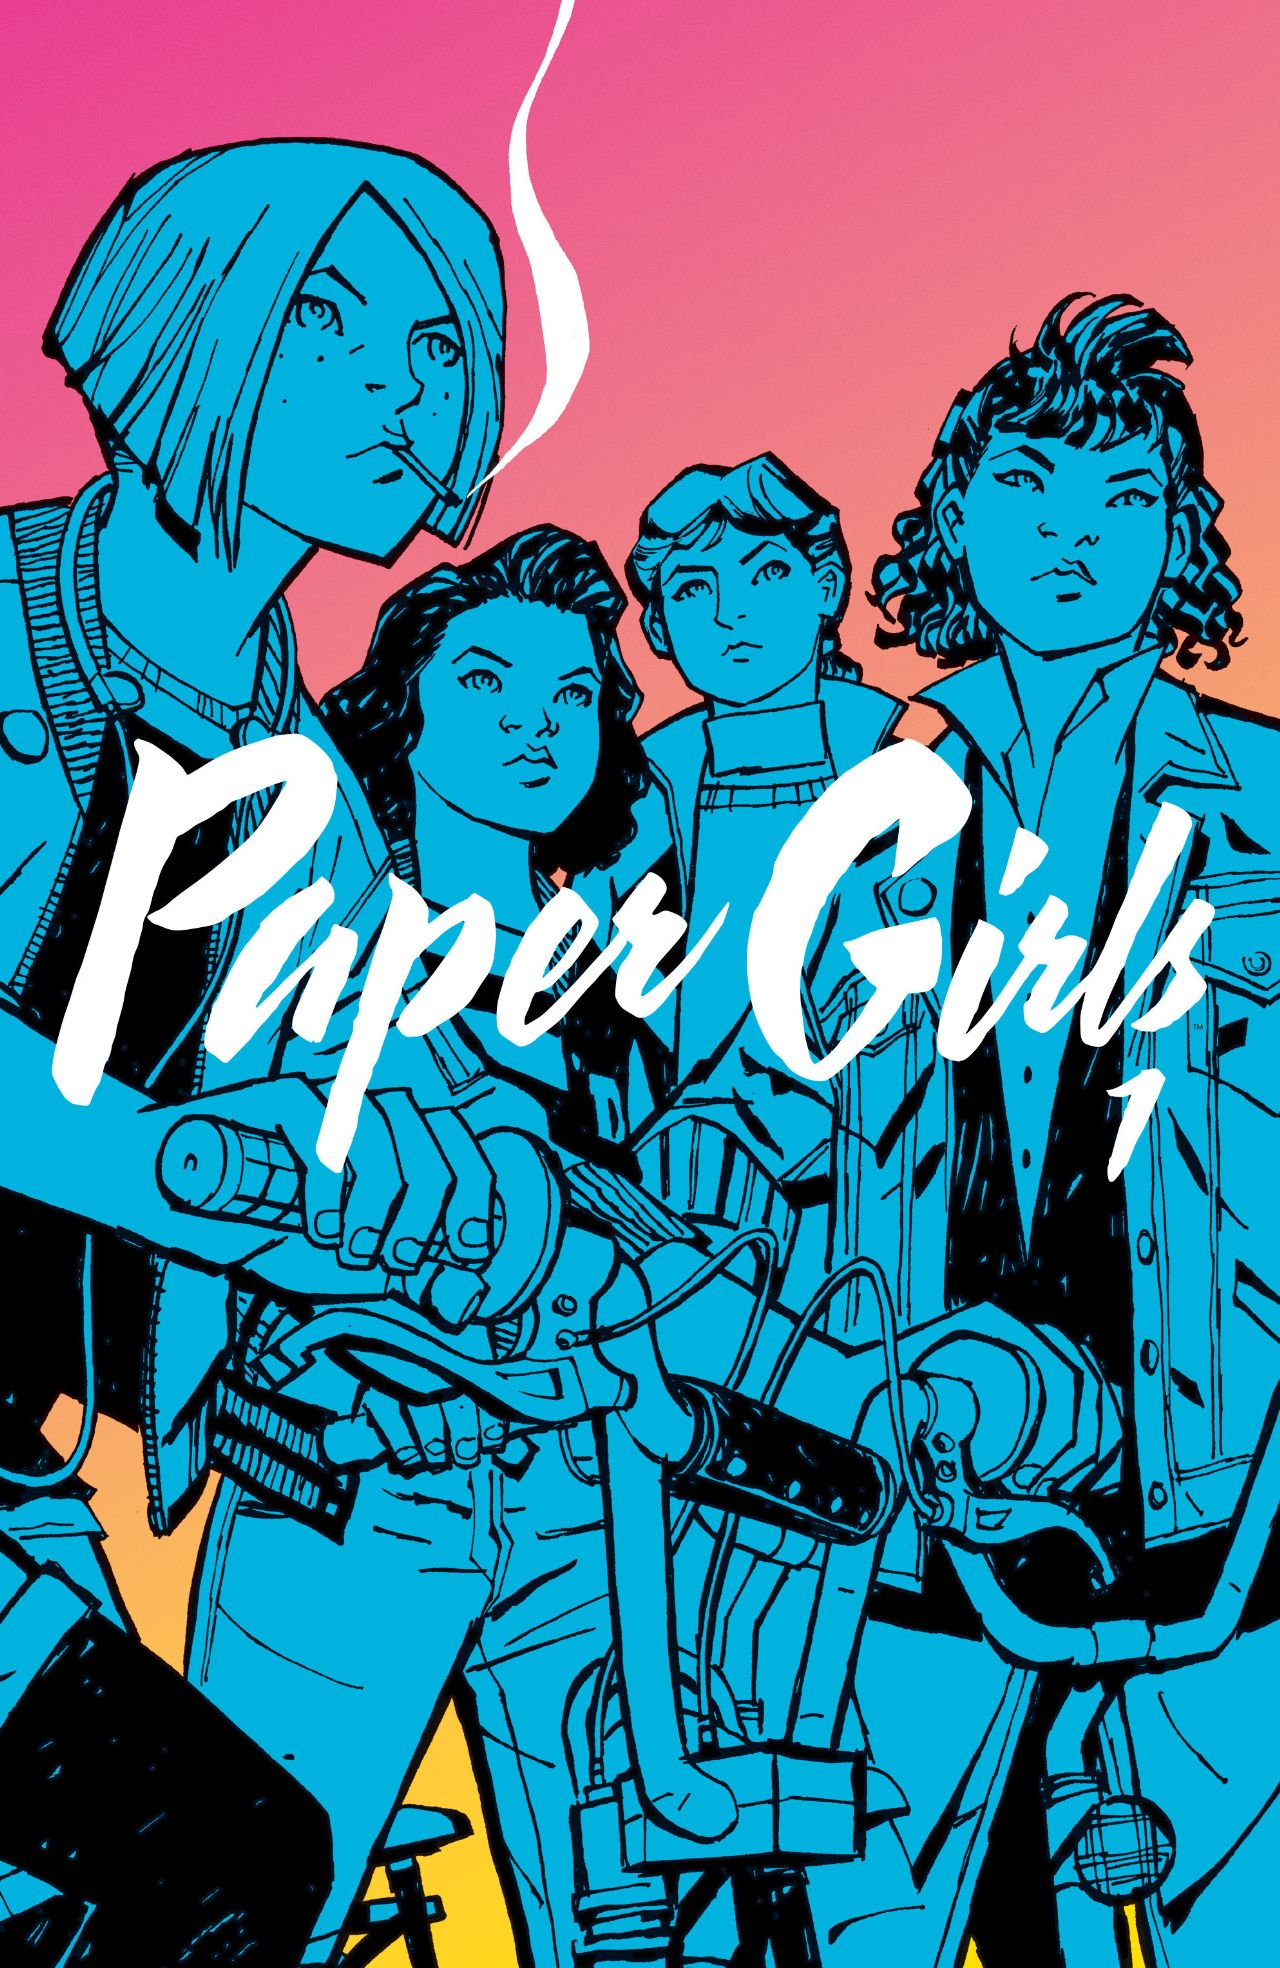 Paper Girls Volume 1 collects issue 1-5